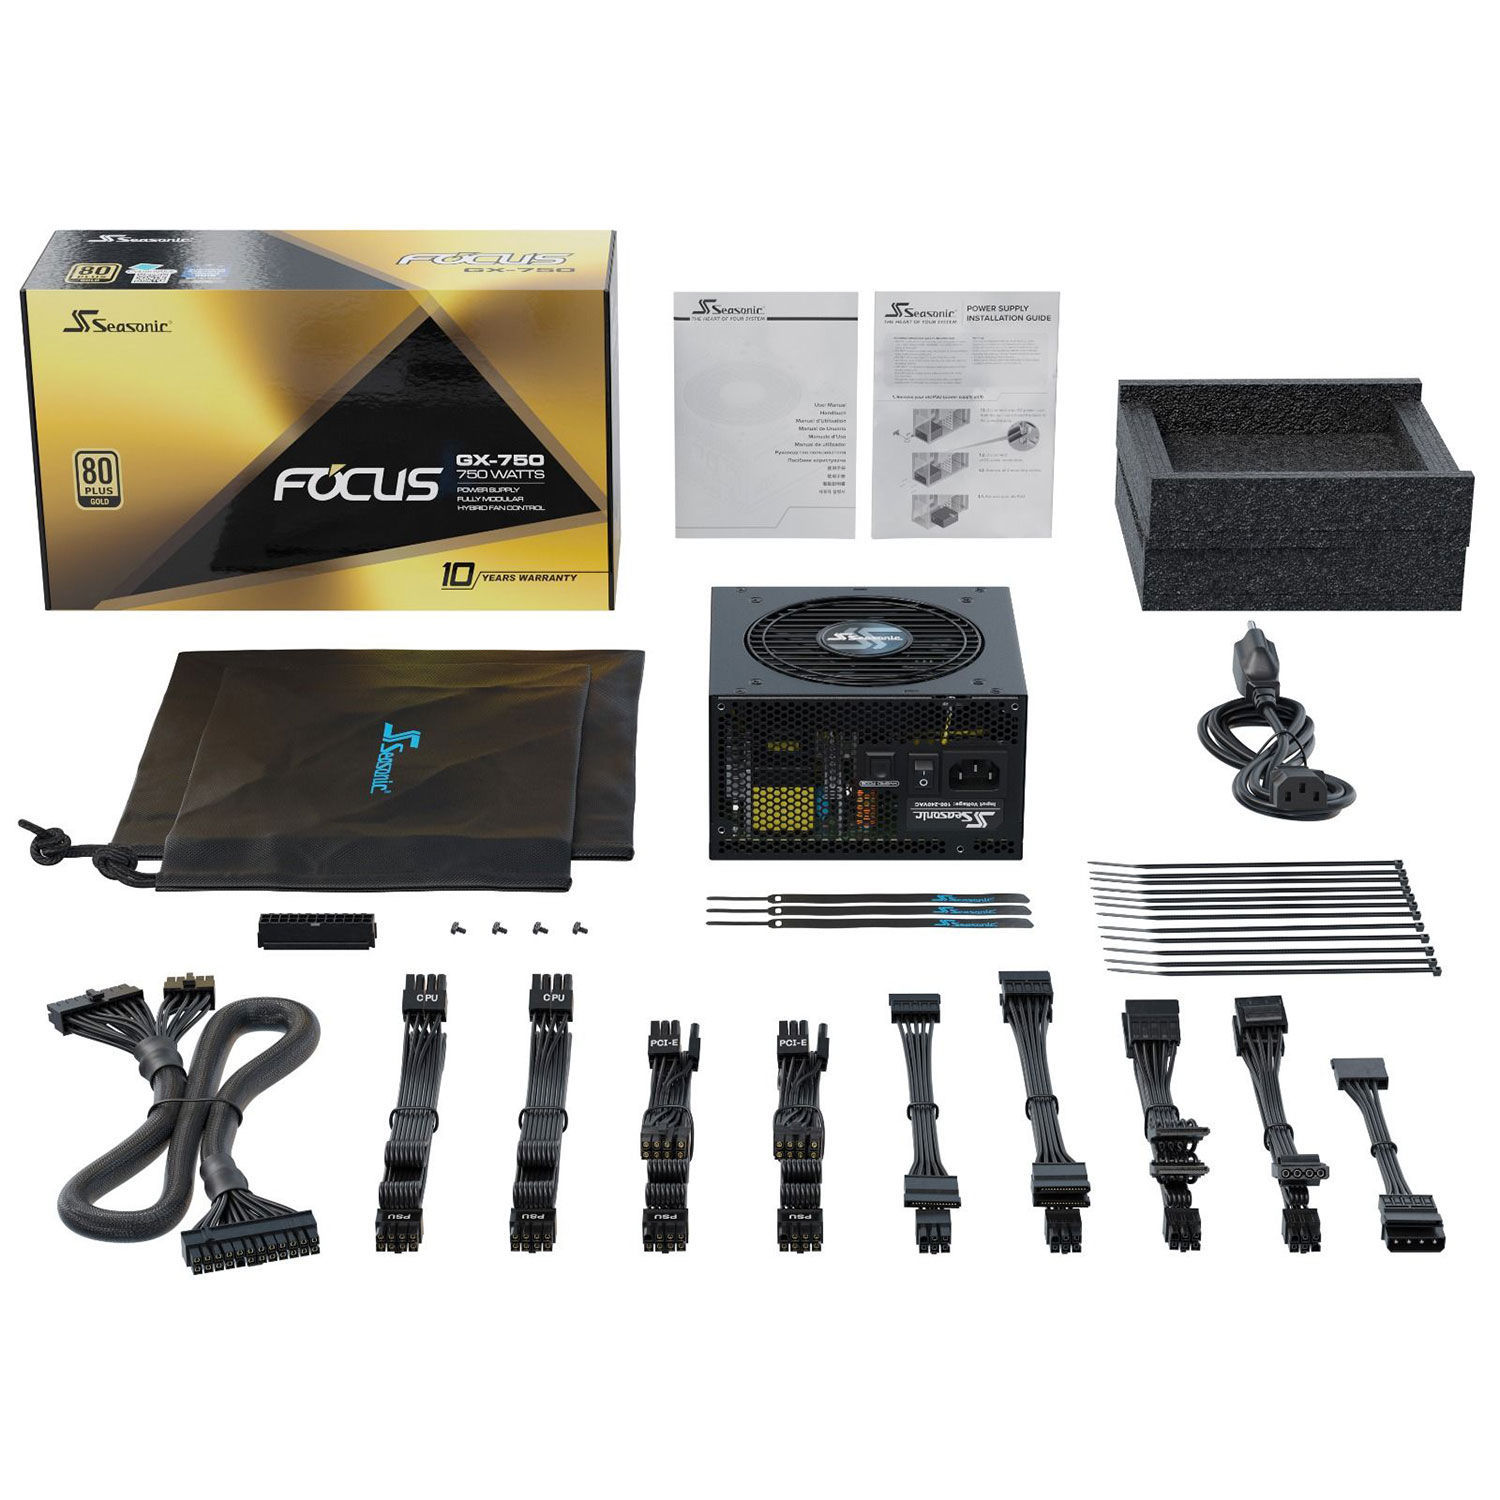 Alimentation PC 750W Seasonic Focus GX750 80 Plus Gold Full Modulaire, informatique ile de la Réunion 974, Futur Réunion Informatique